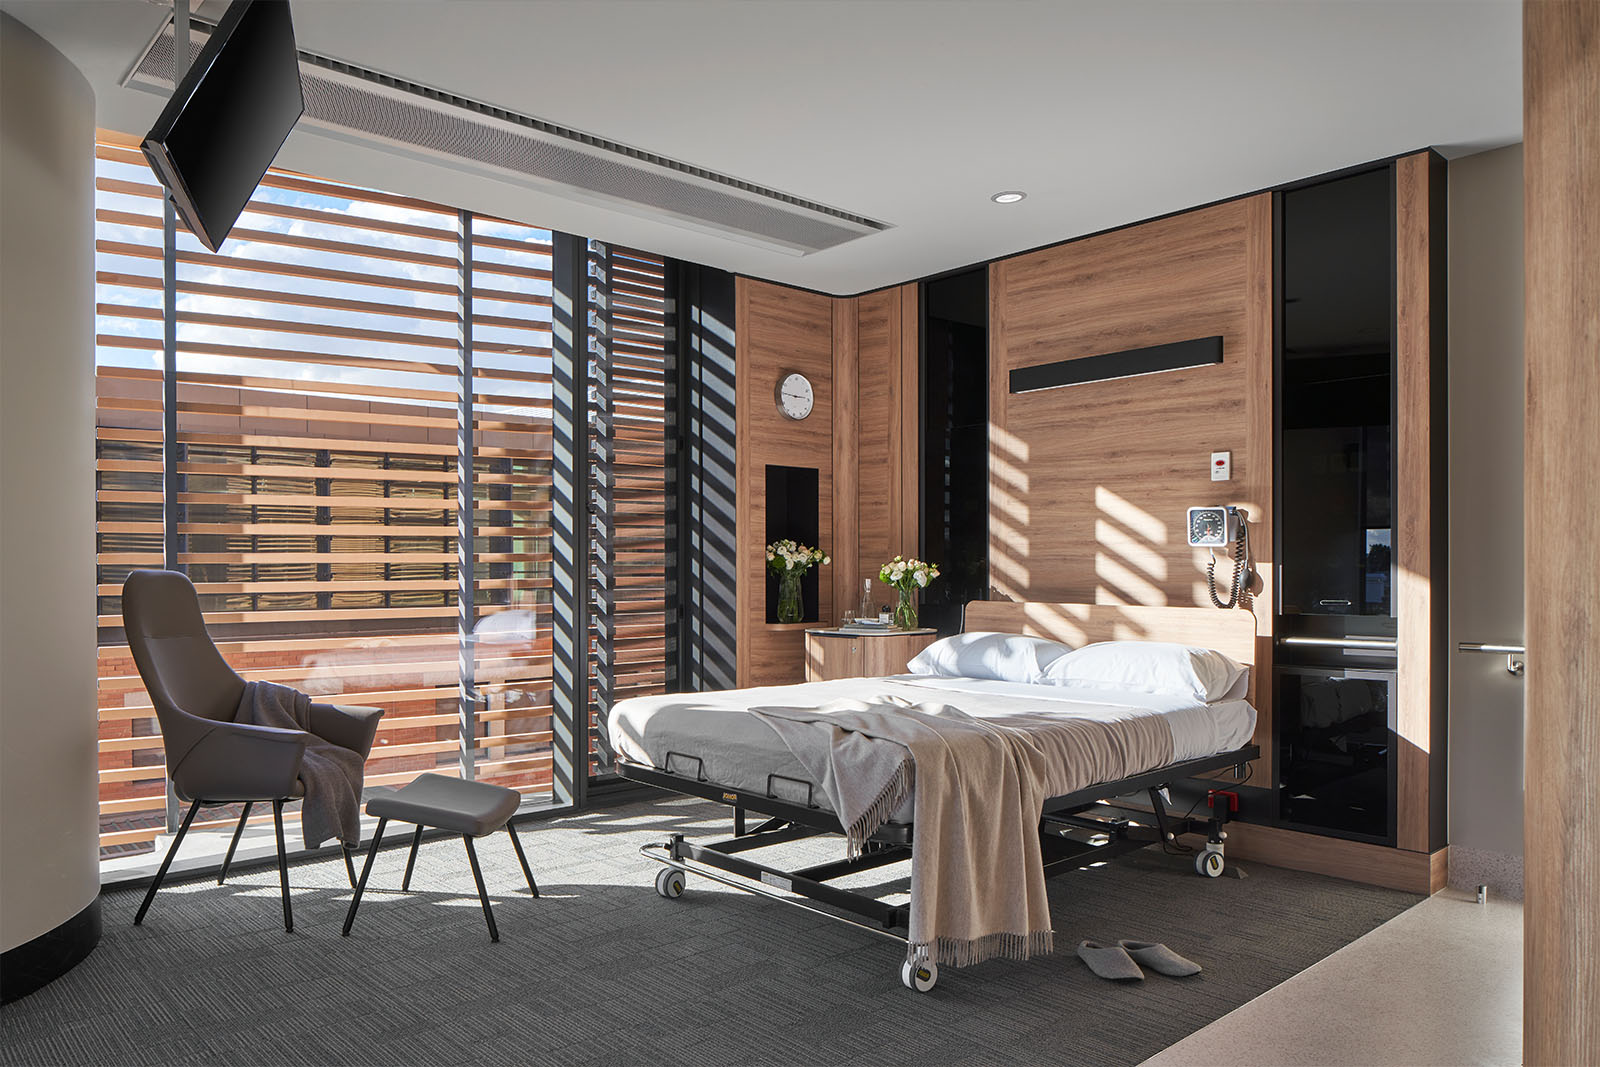 A hospital room in the Gandel Wing, Cabrini Malvern using Artefact Industries lighting products